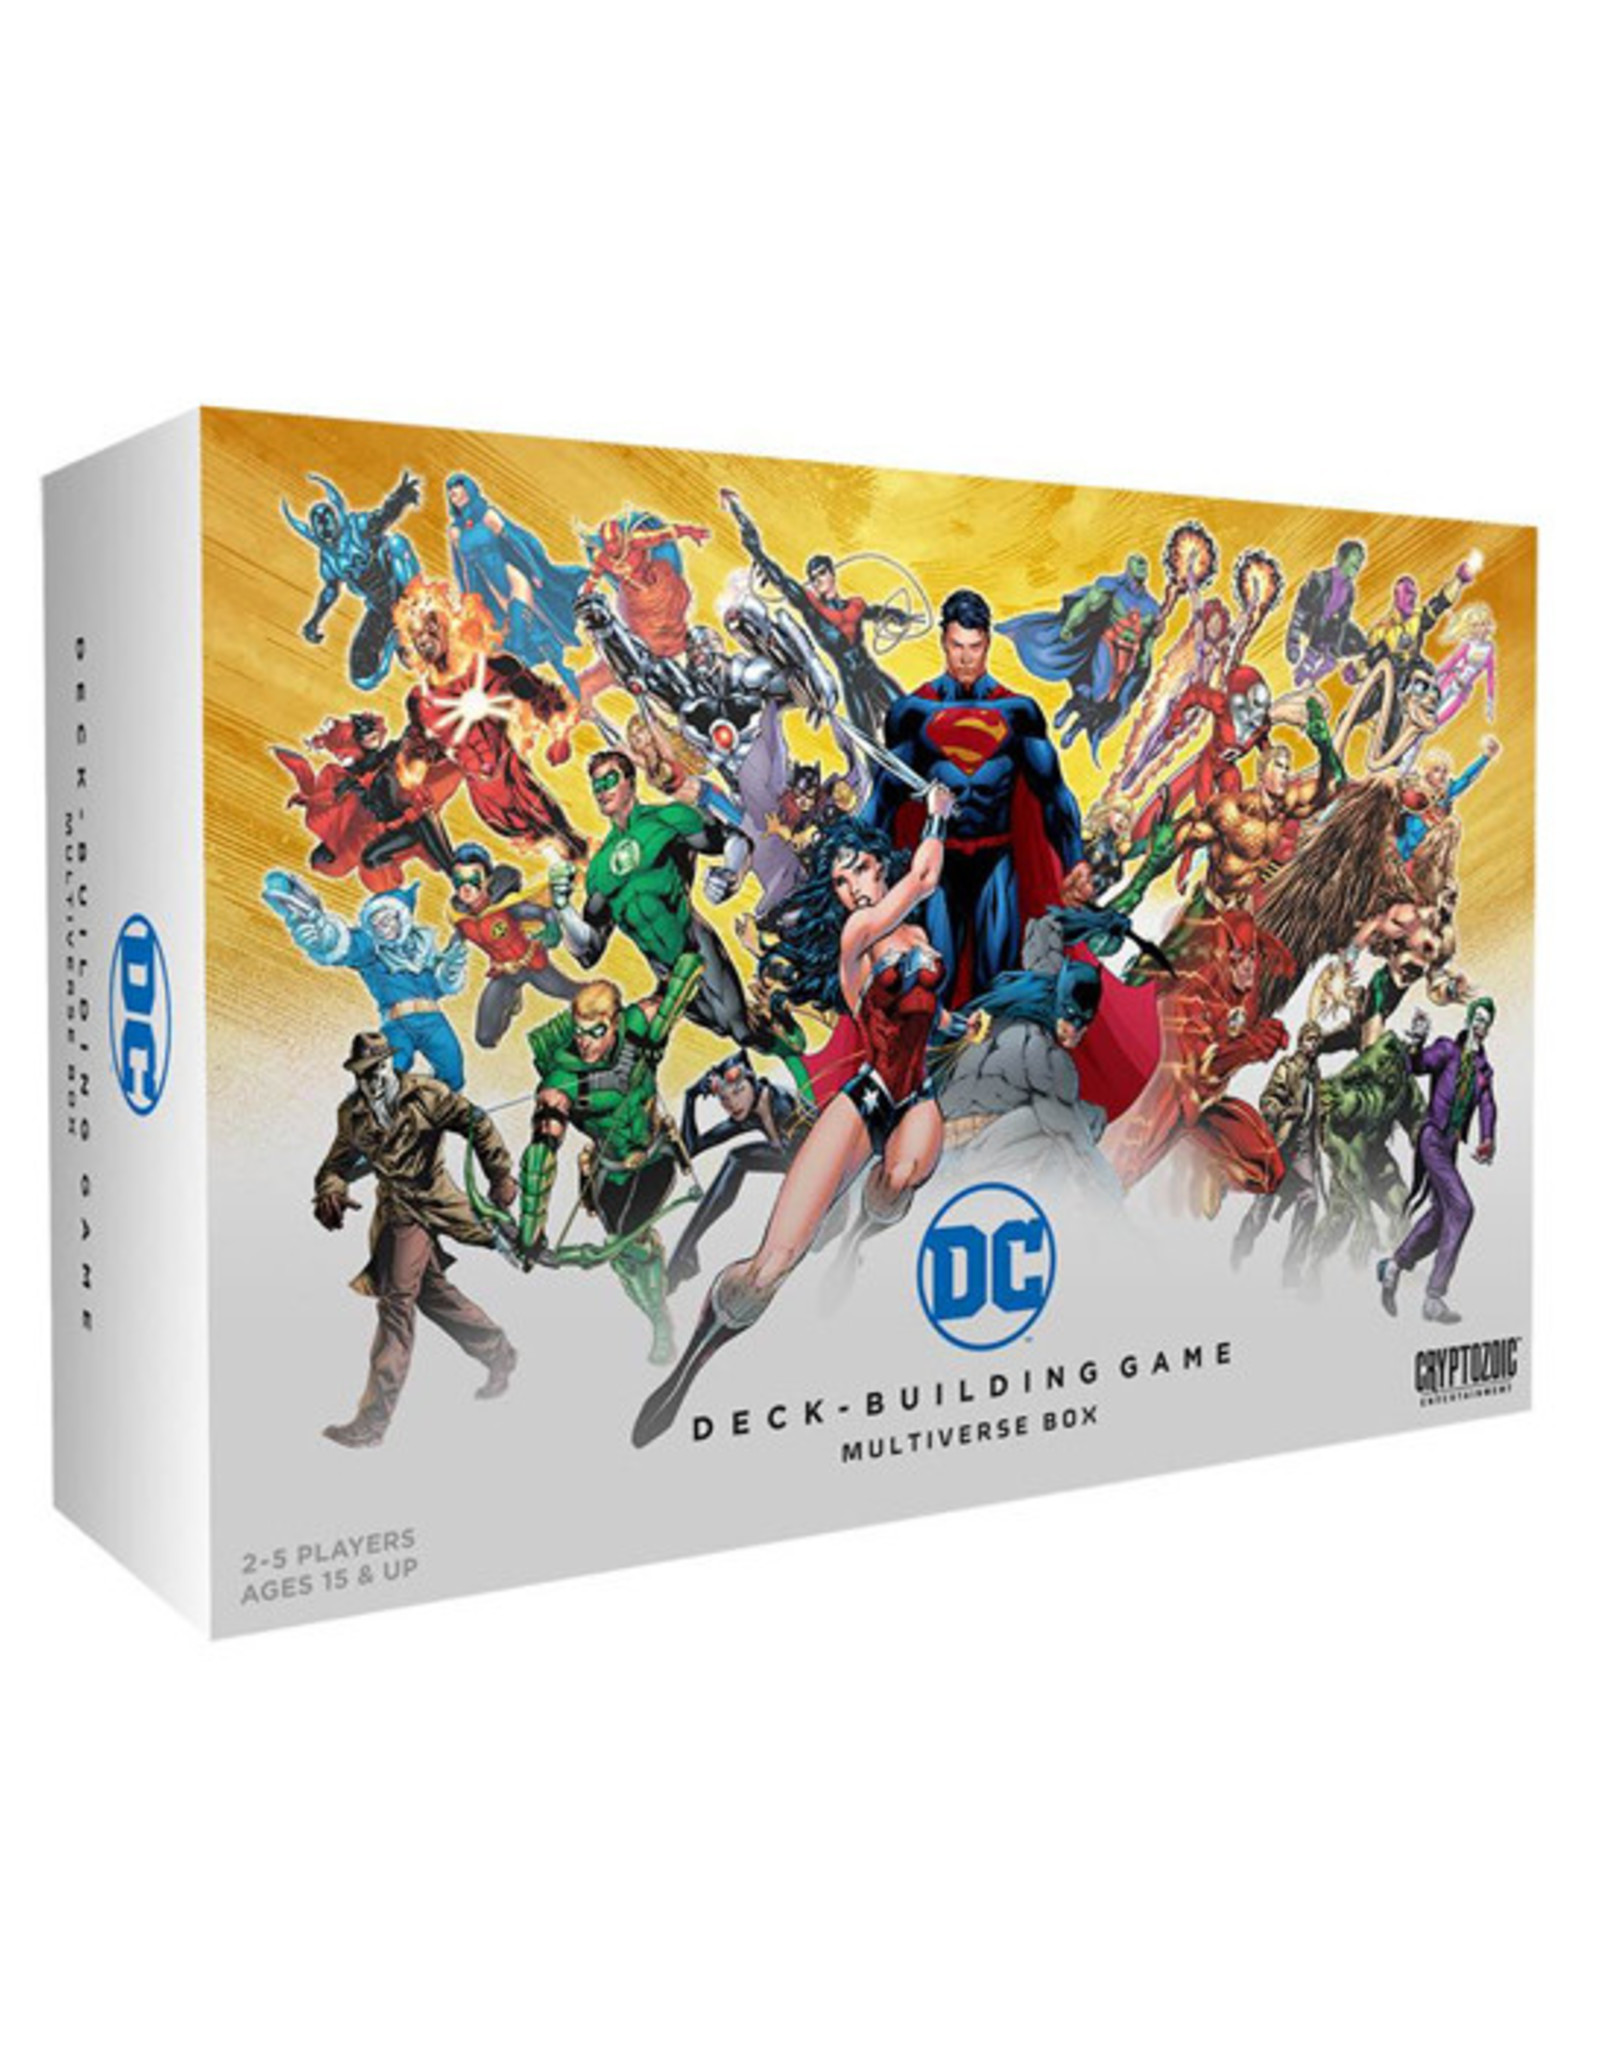 DC Deck Building Game: Multiverse Box